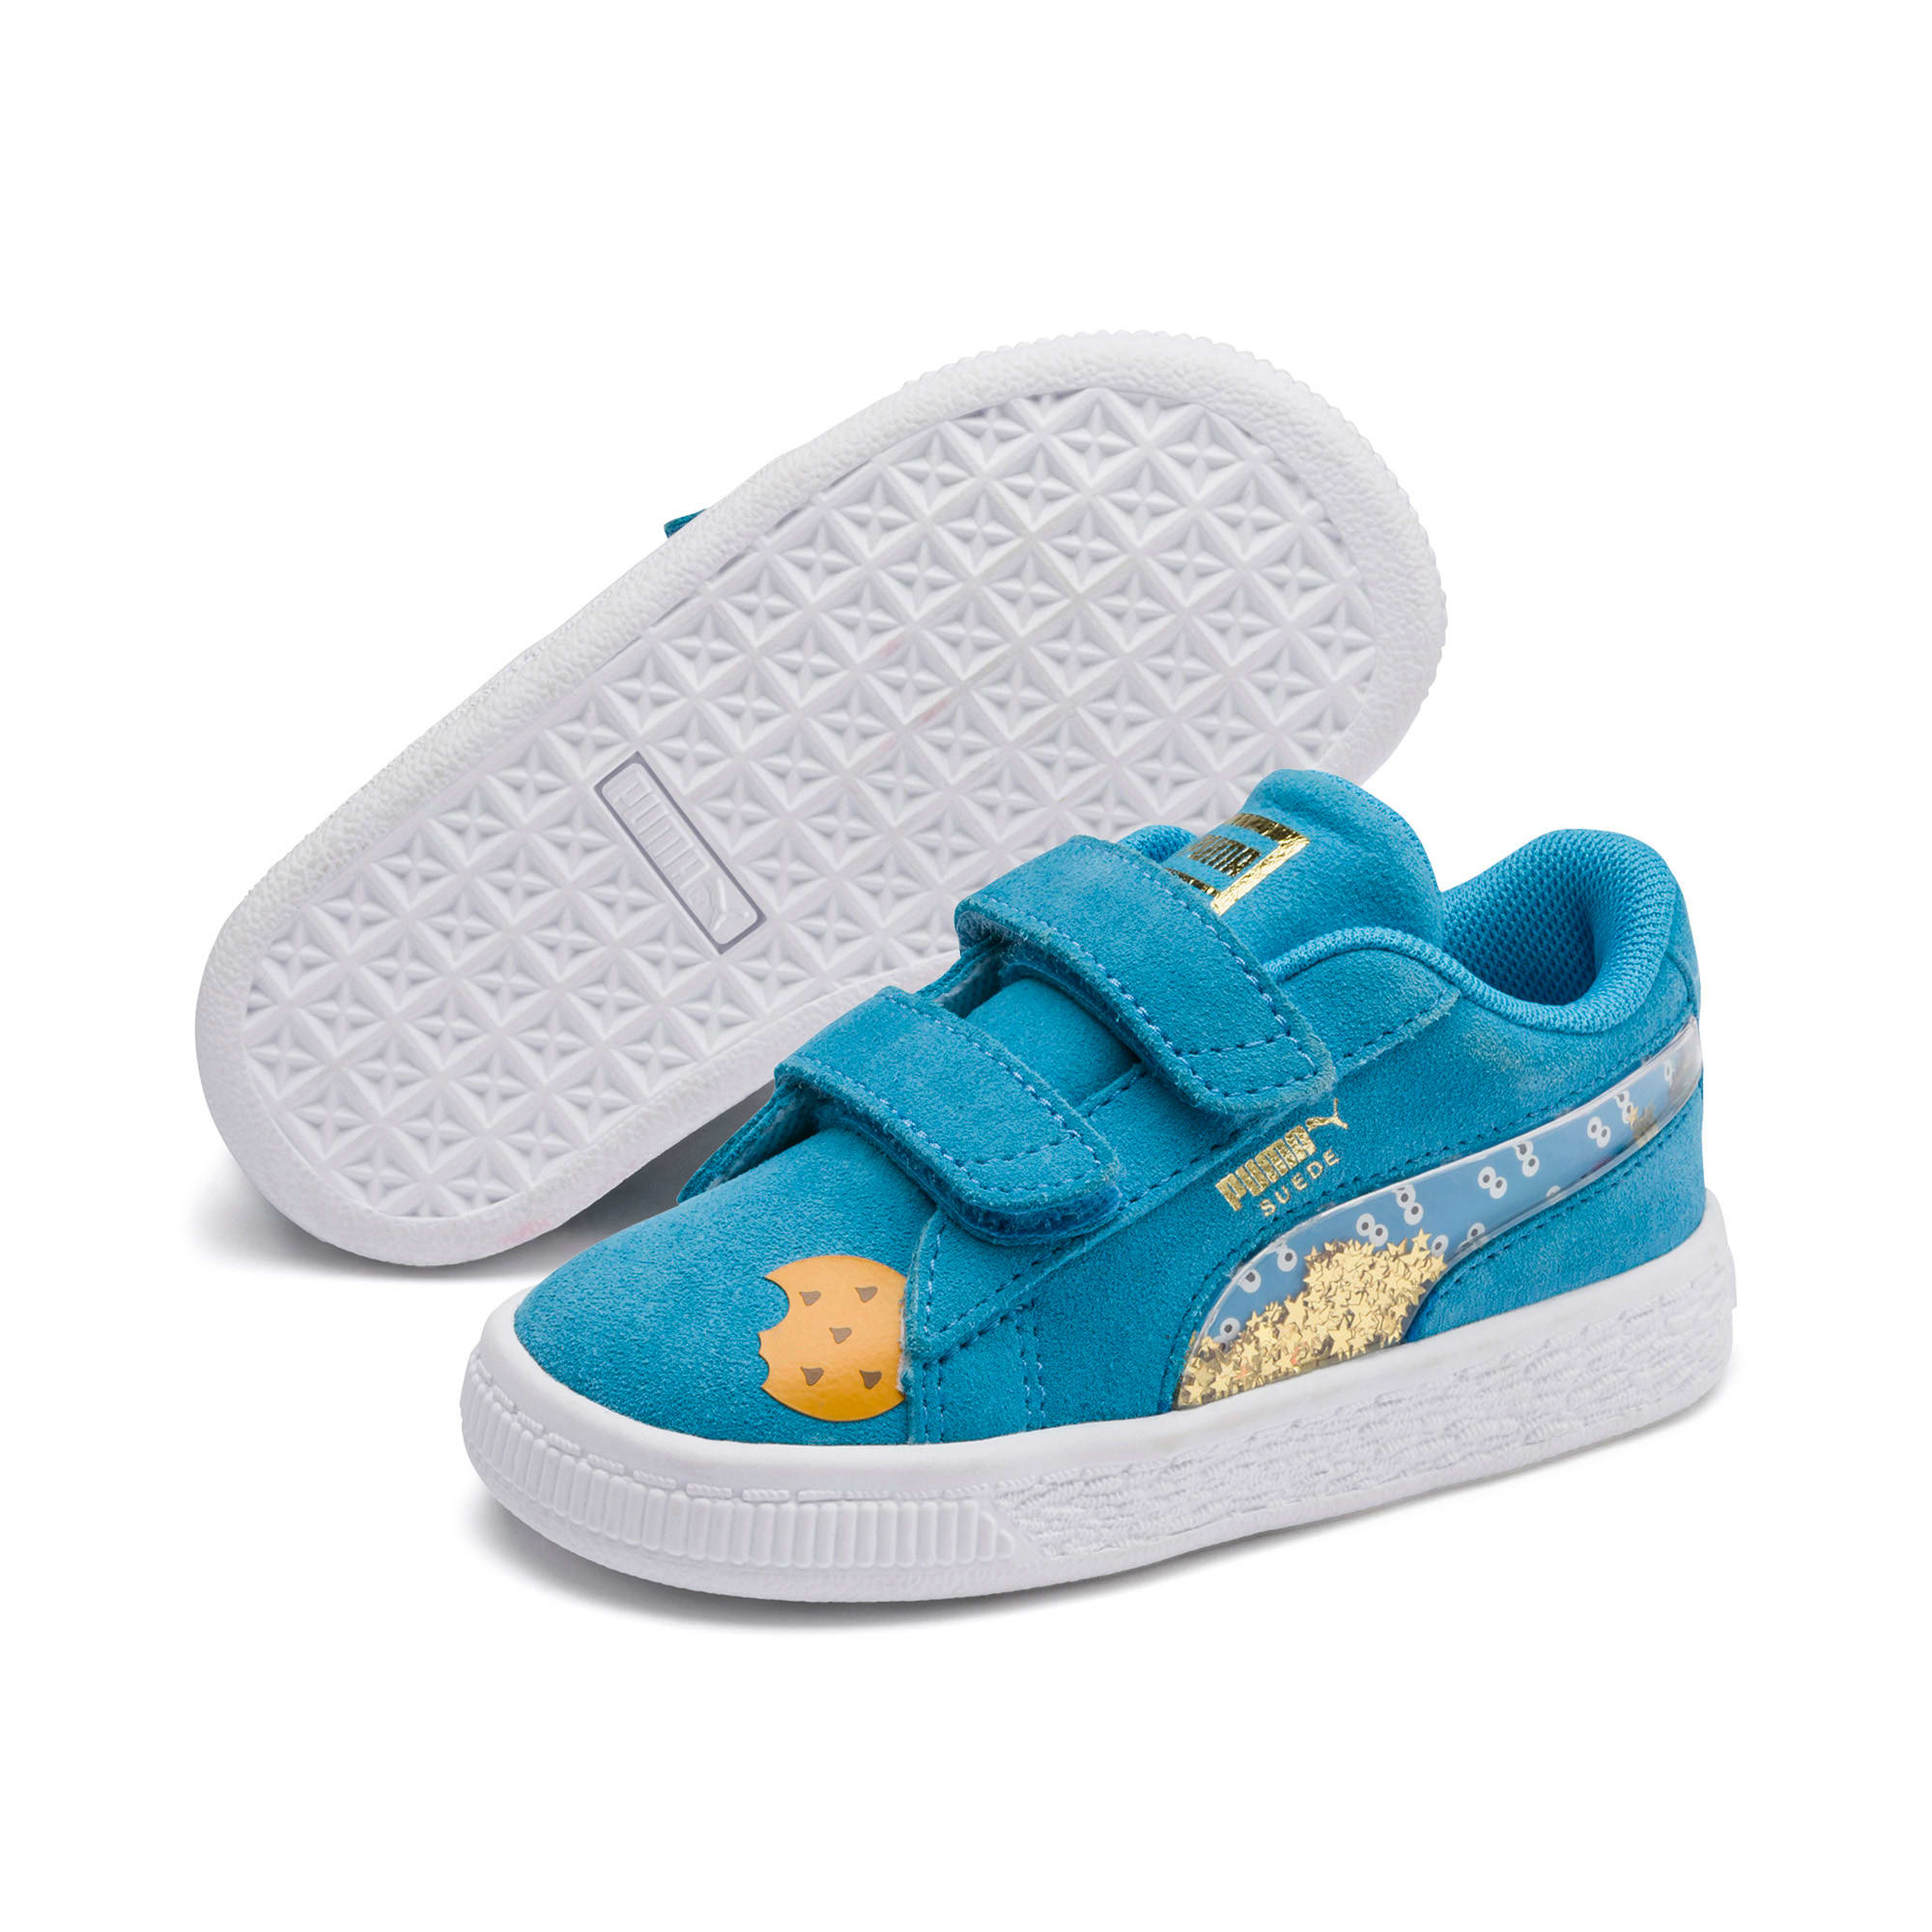 Thumbnail 2 of Sesame Street 50 Suede Statement Babies' Trainers, Bleu Azur-Puma White, medium